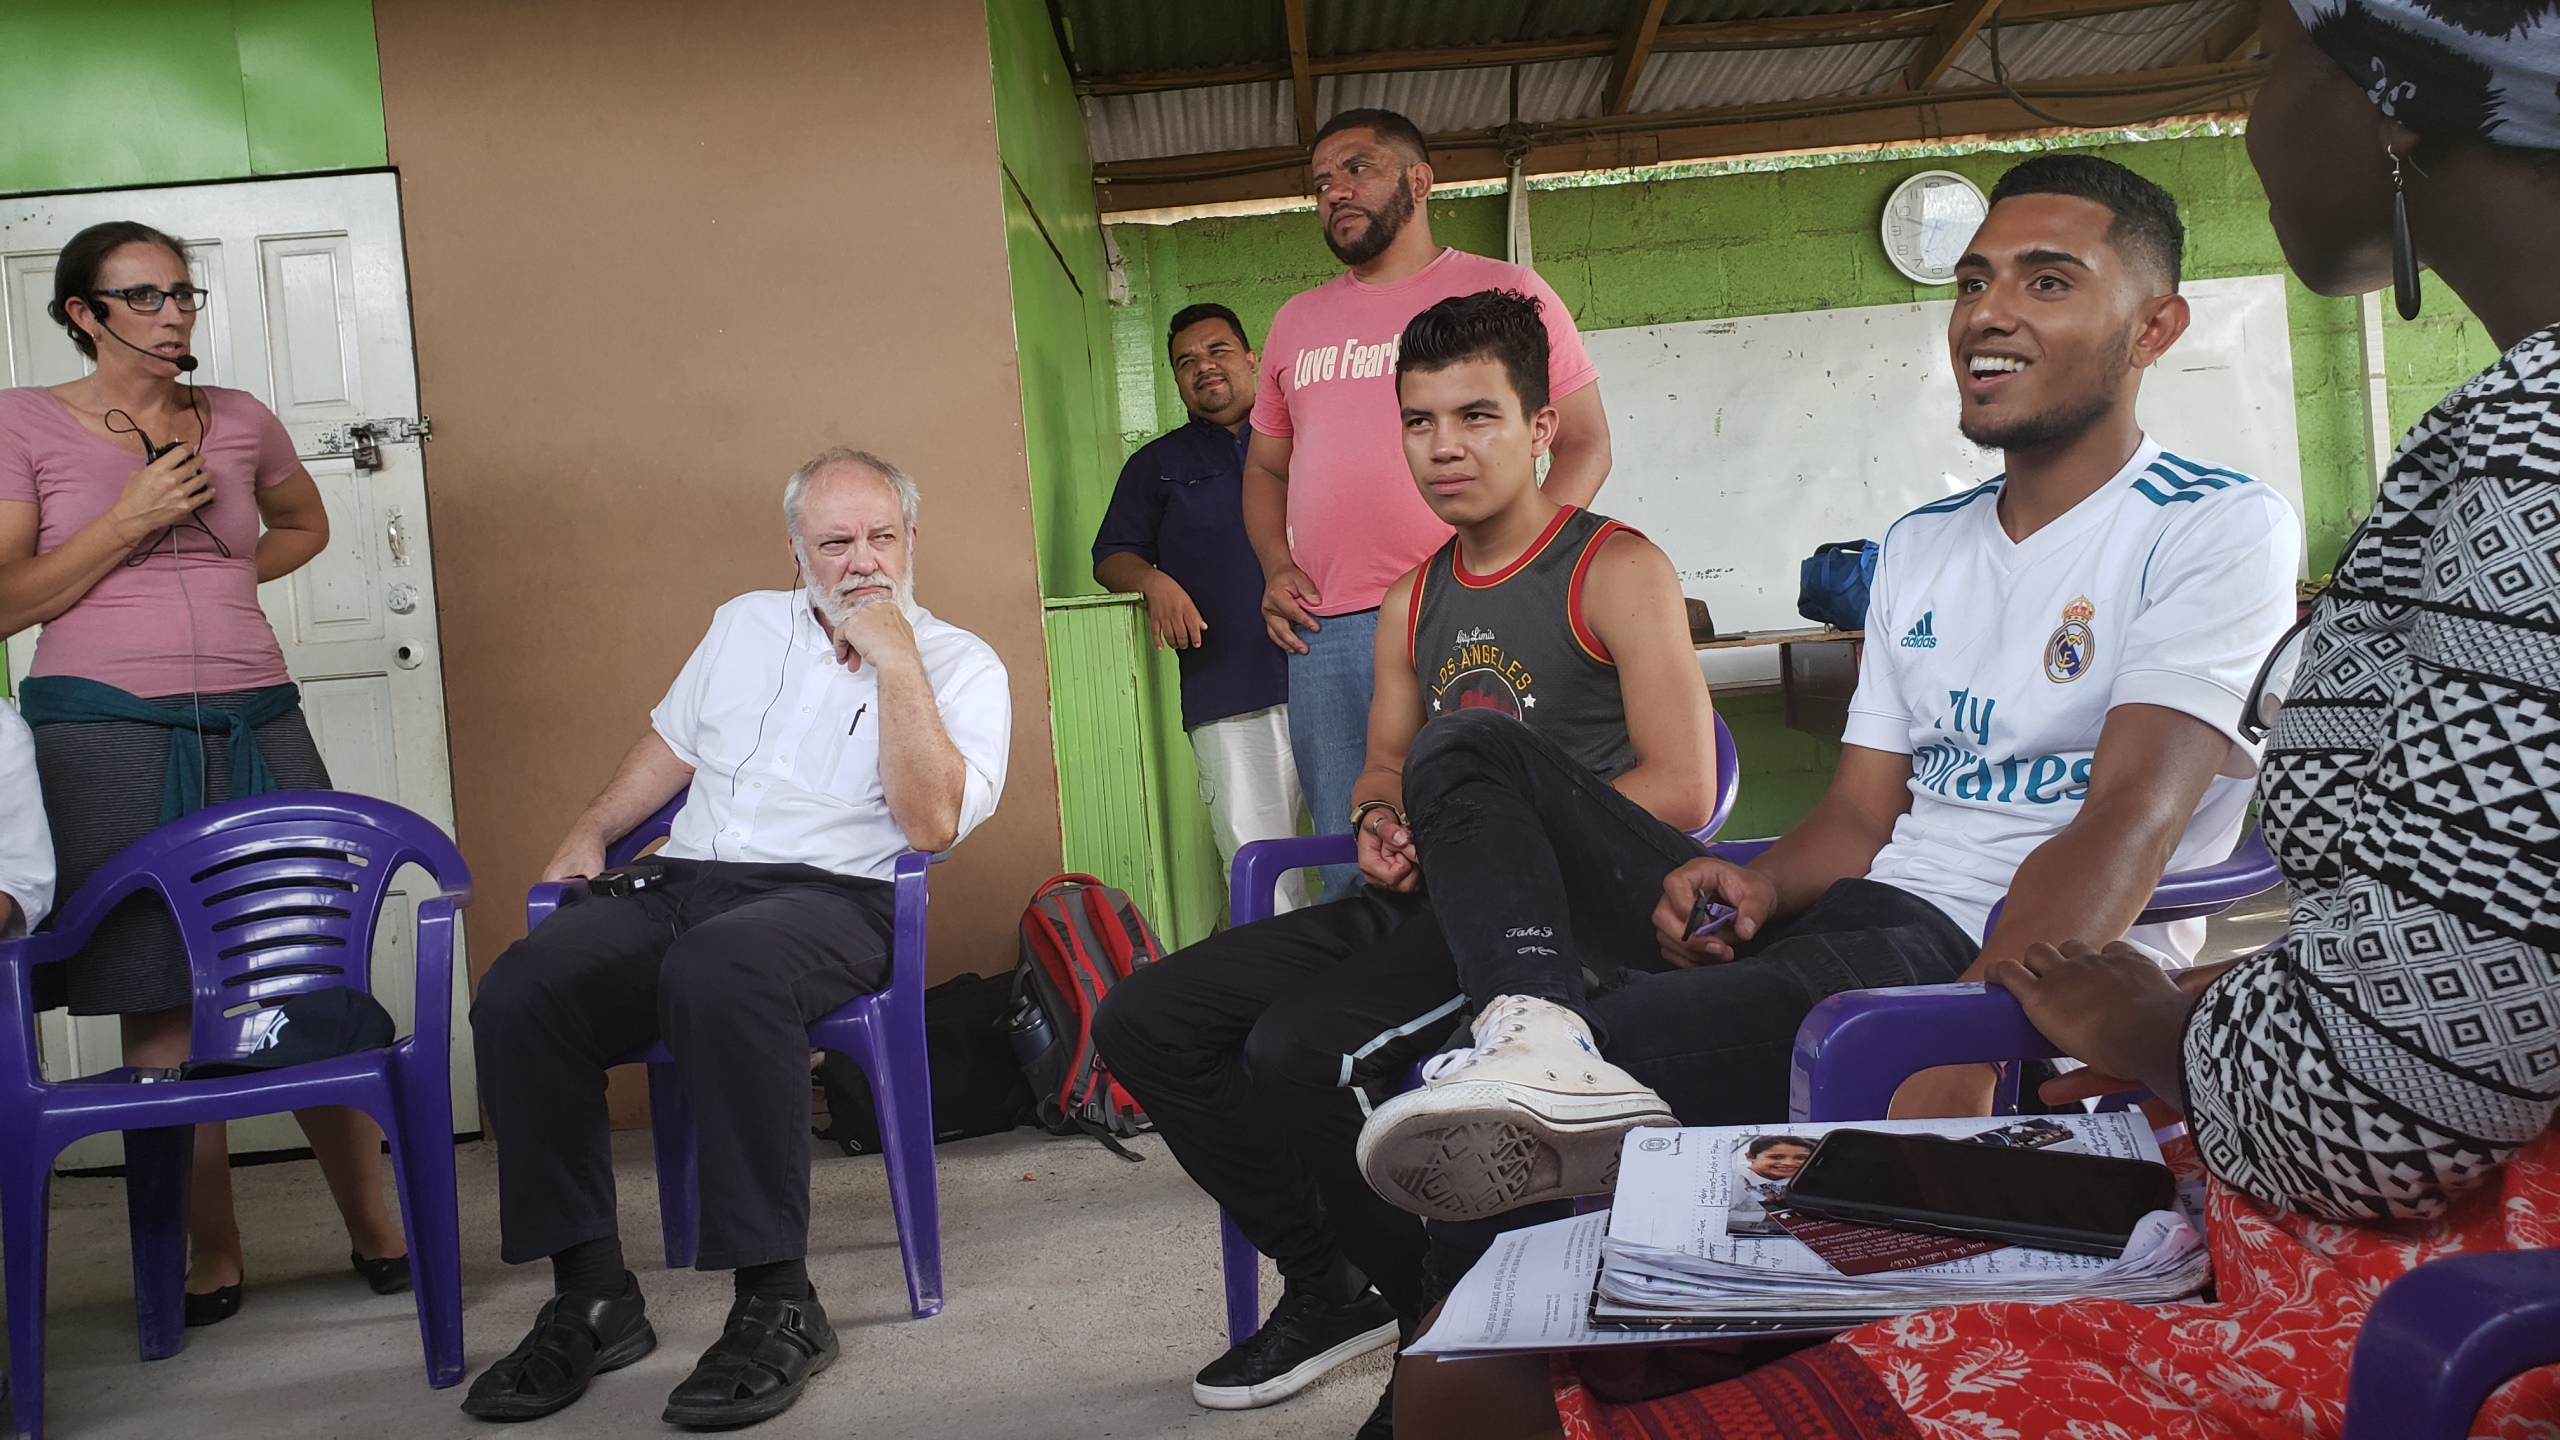 """Presbyterian Church visitors (from left) Tracey King-Ortega, Chris Iosso and Alexander Rodas met with participants in a youth development center in the neighborhood of Nueva Suyapa, Tegucigalpa, Honduras. The youth and their mentor spoke of their desires to be """"agents of change"""" in their neighborhoods, to study at university and to support their families."""